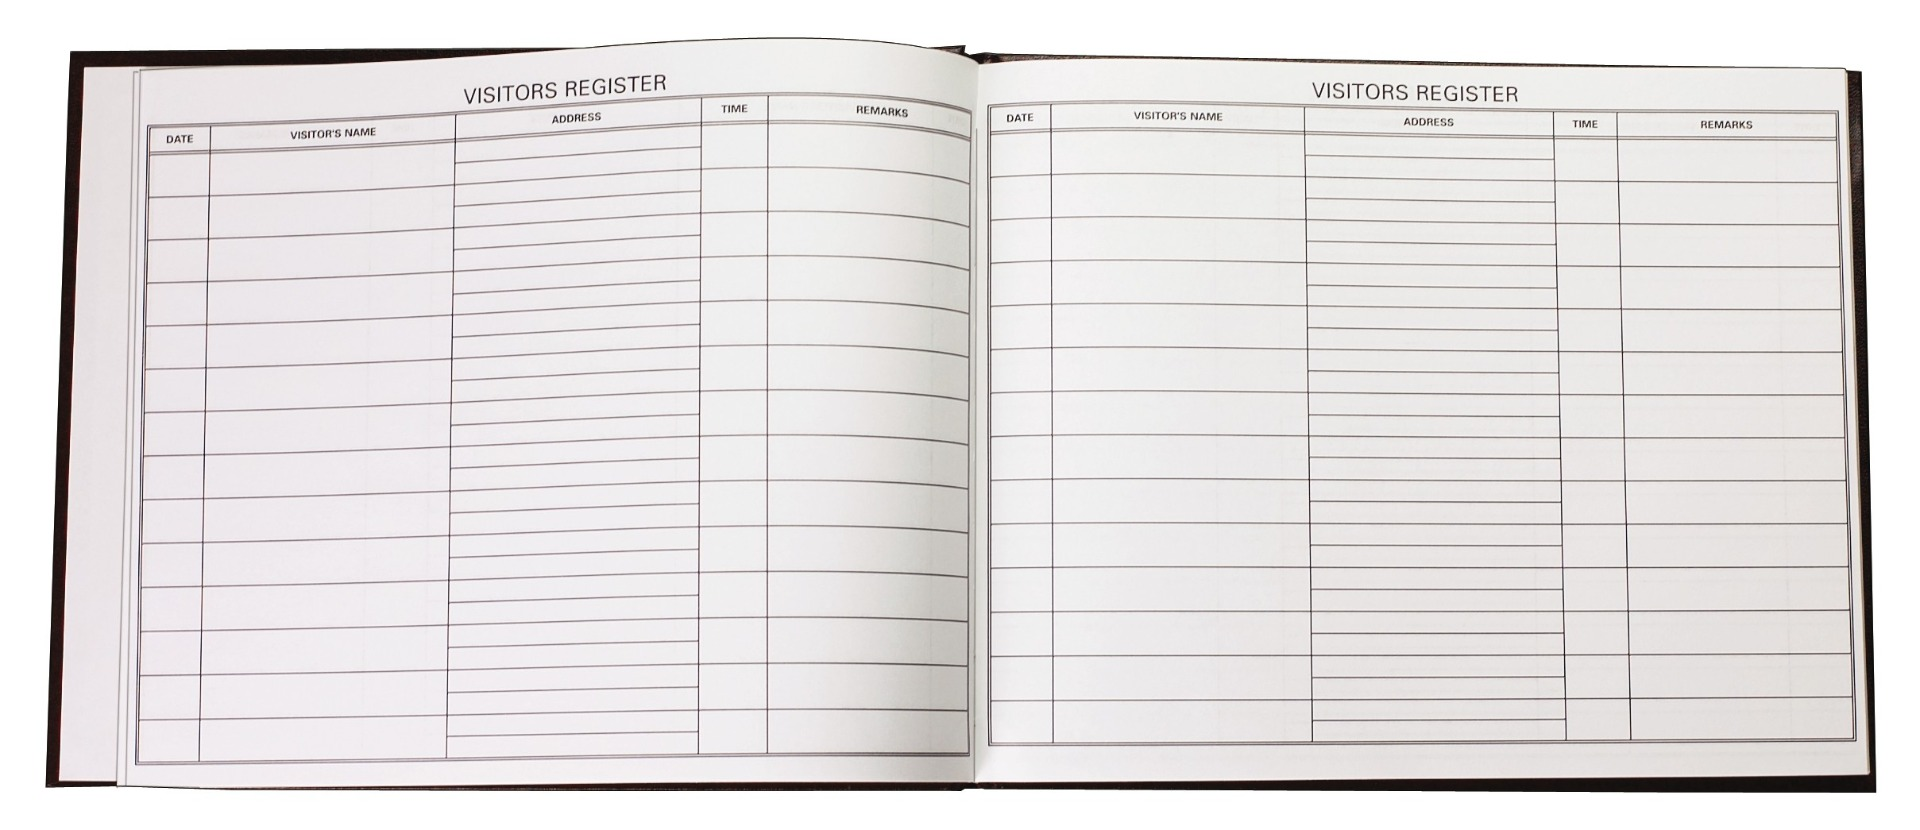 Visitor Register-Rexine Binding, 192 Pages 4 Qr